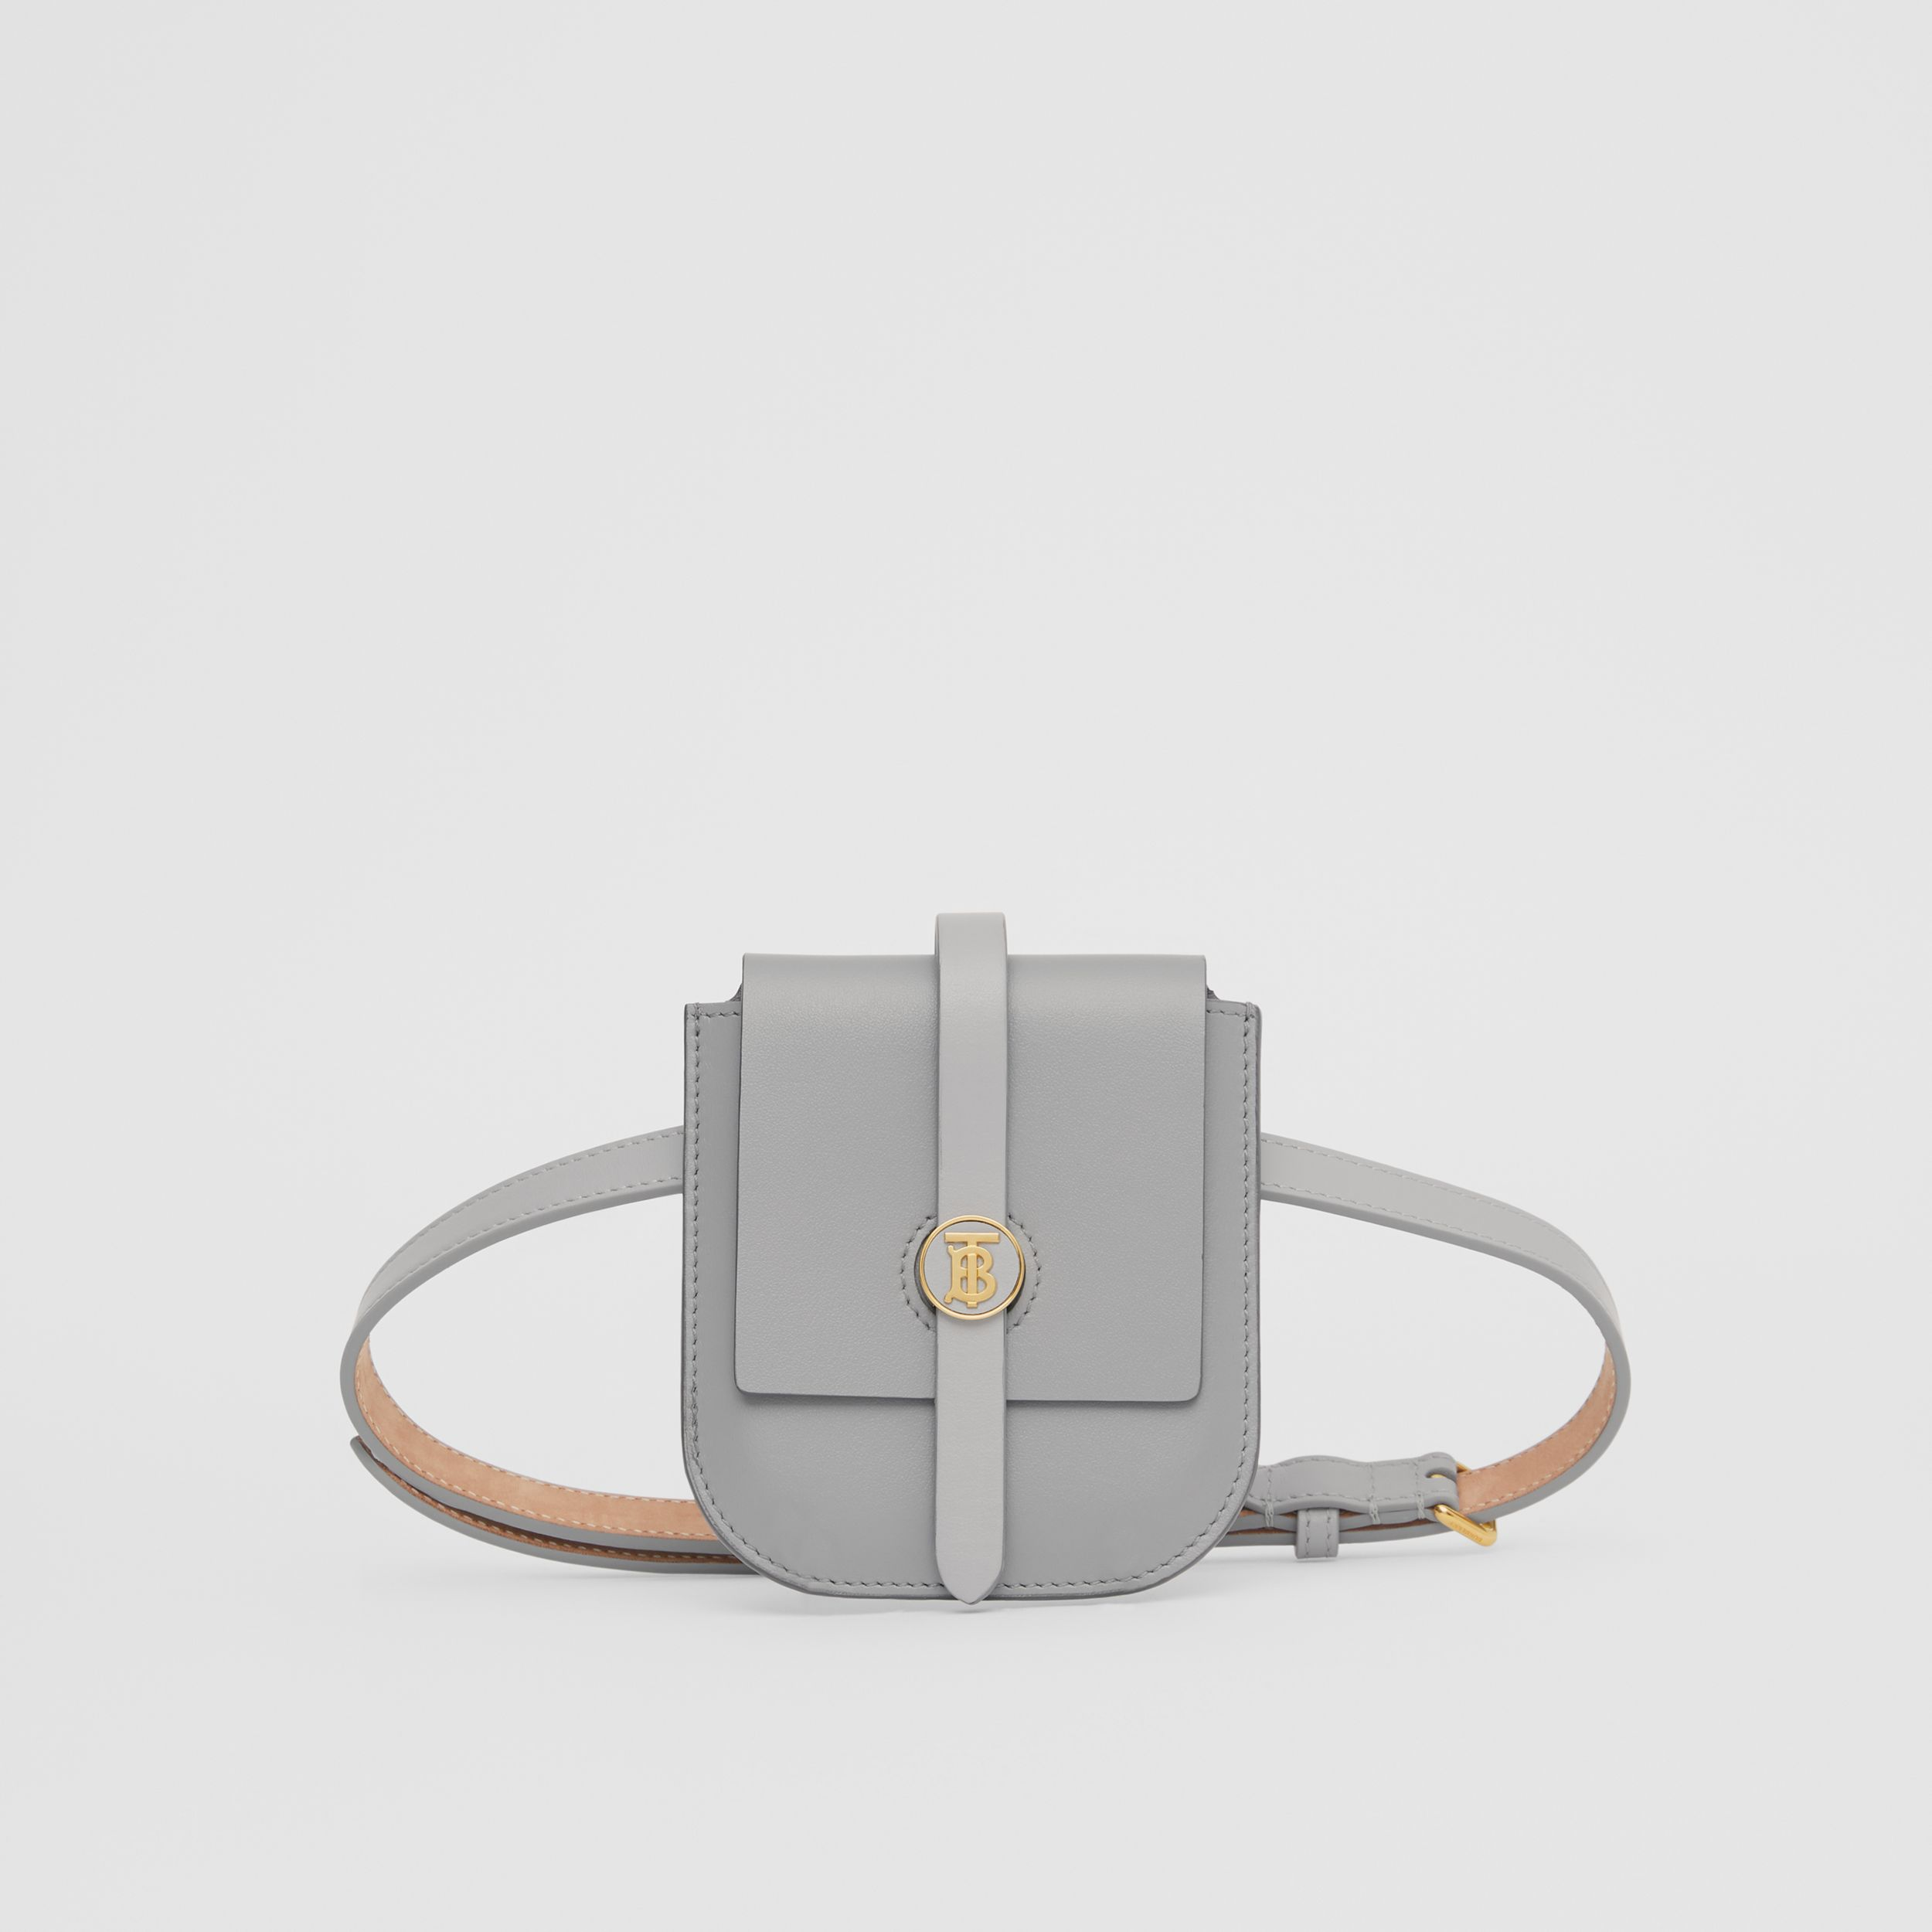 Belted Grainy Leather Anne Clutch in Cloud Grey - Women | Burberry - 1